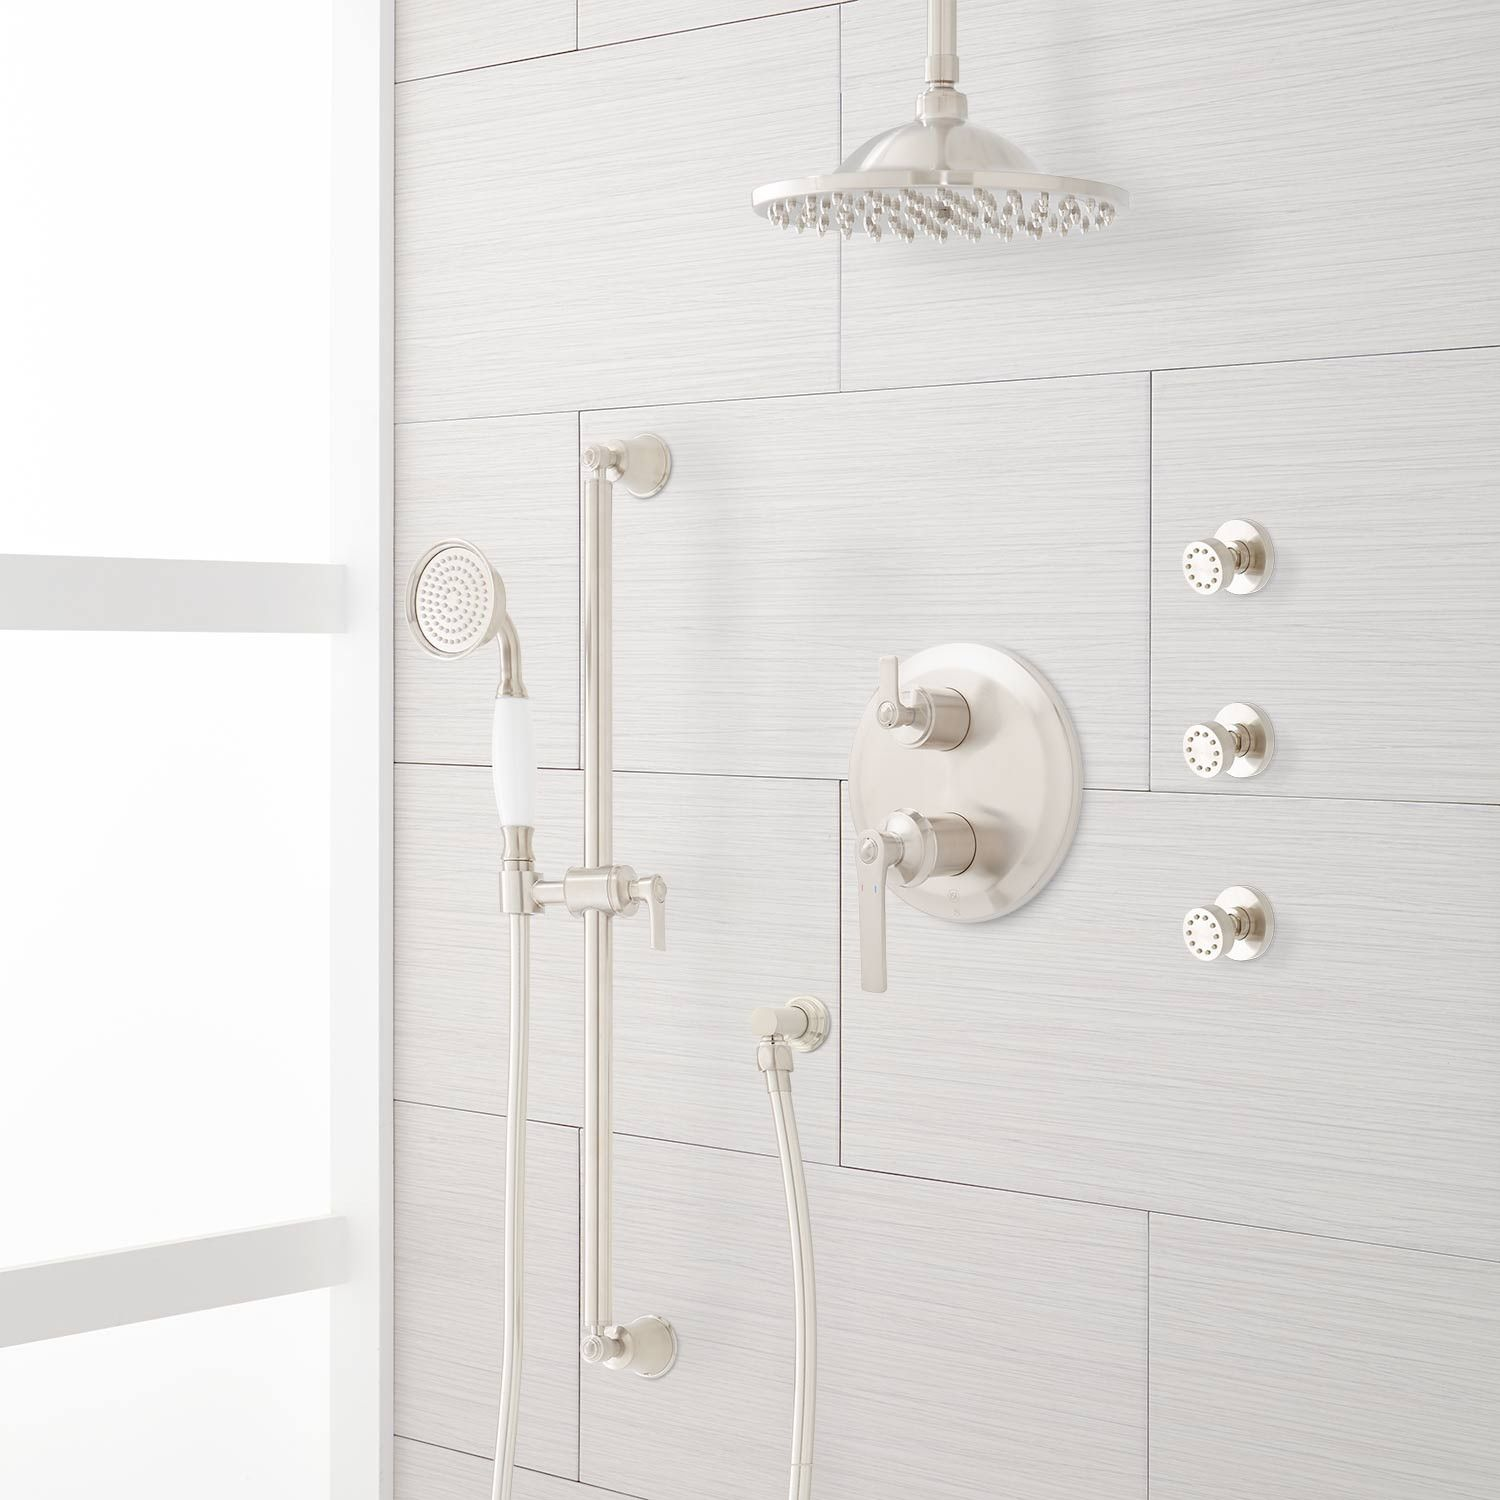 Cooper Pressure Balance Shower System With Rainfall Shower 3 Body